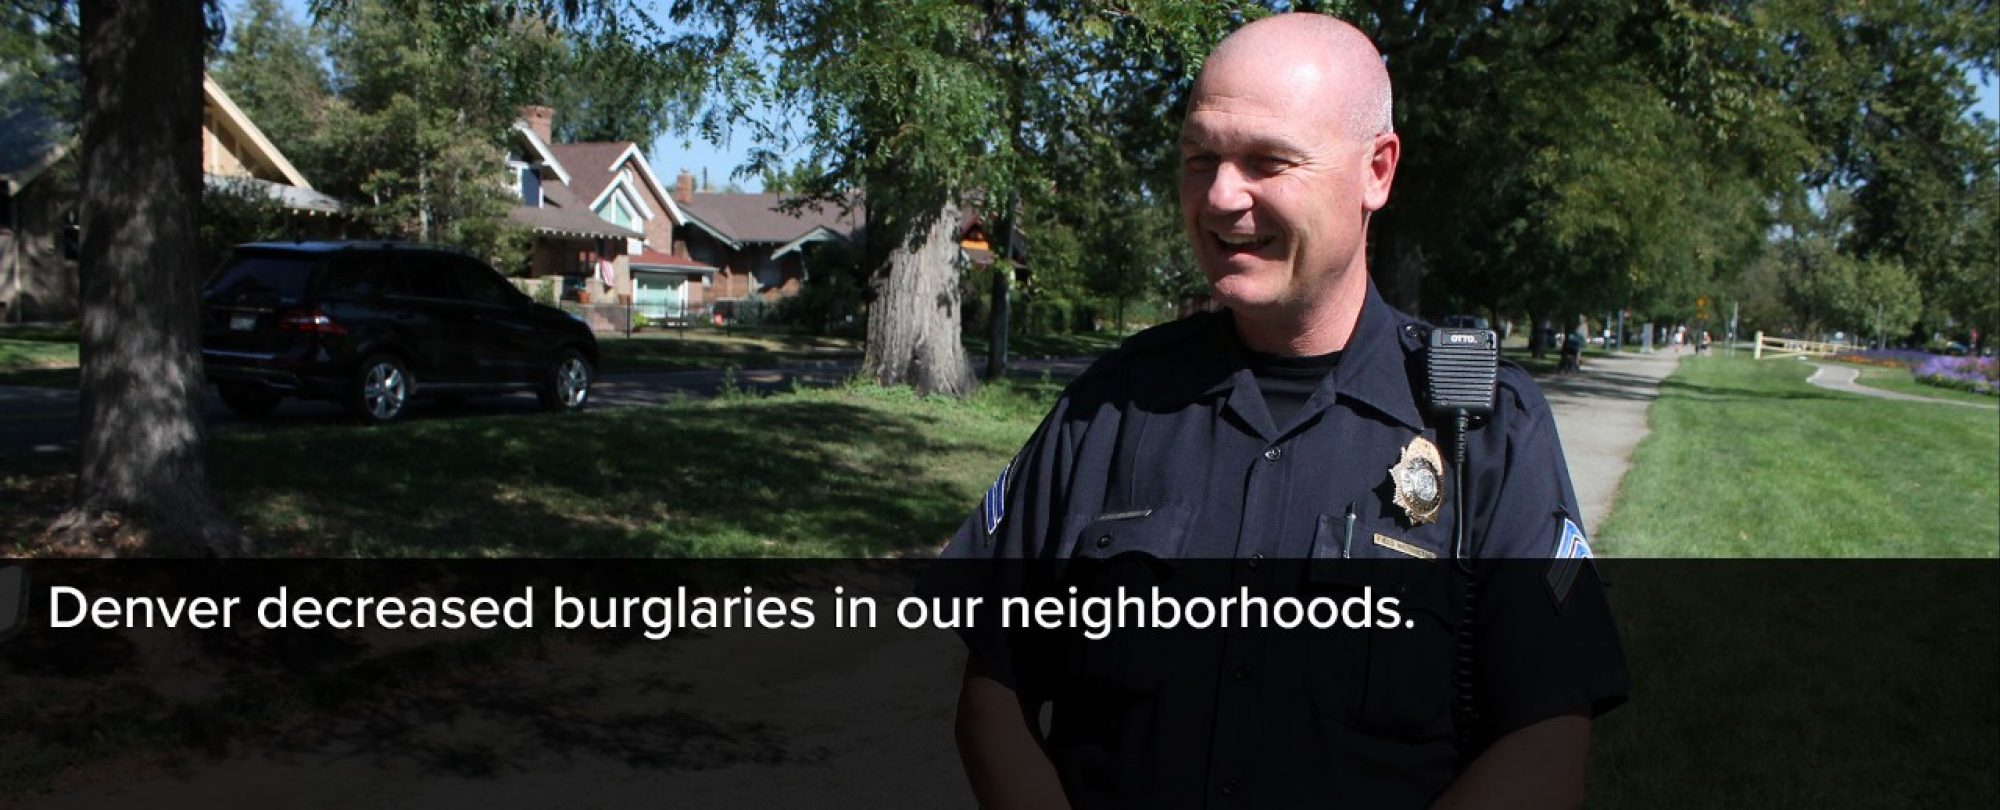 Photo of Denver Police officer in local Denver neighborhood. Denver decreased burglaries in Denver neighborhoods over the year